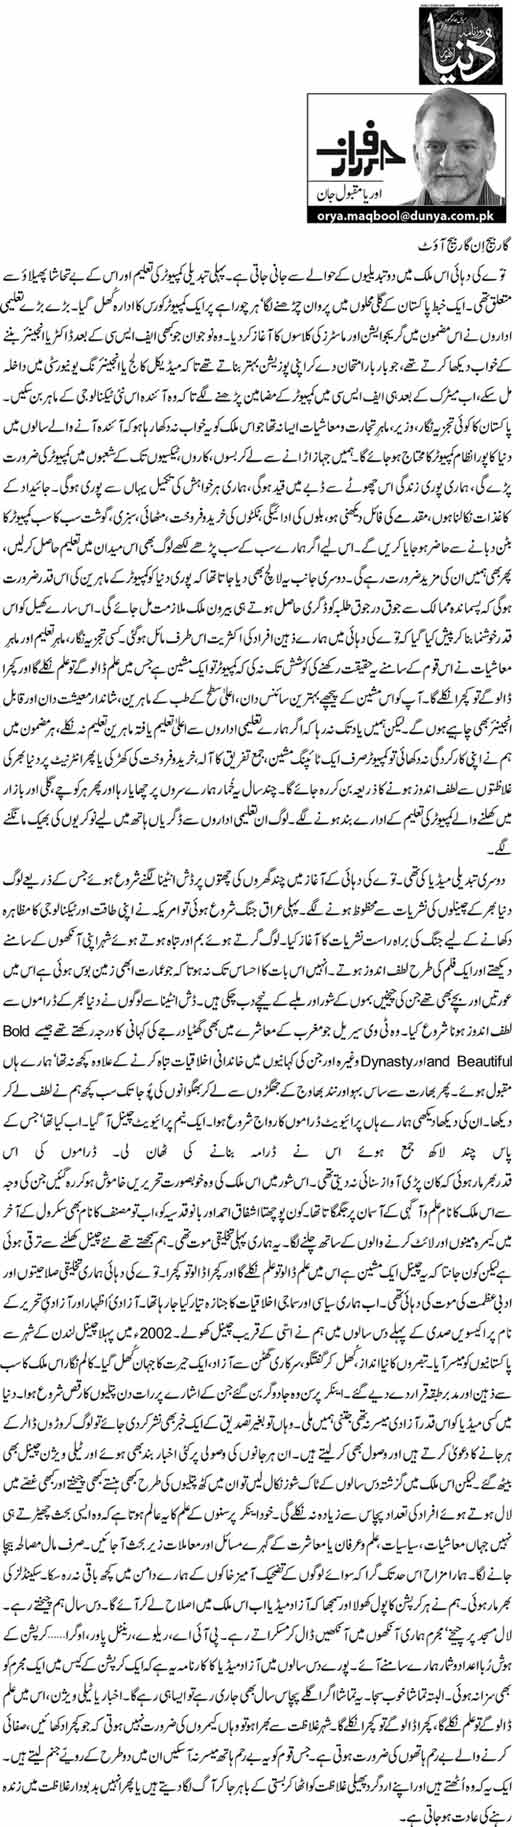 Garbage in garbage out - Orya Maqbool Jan